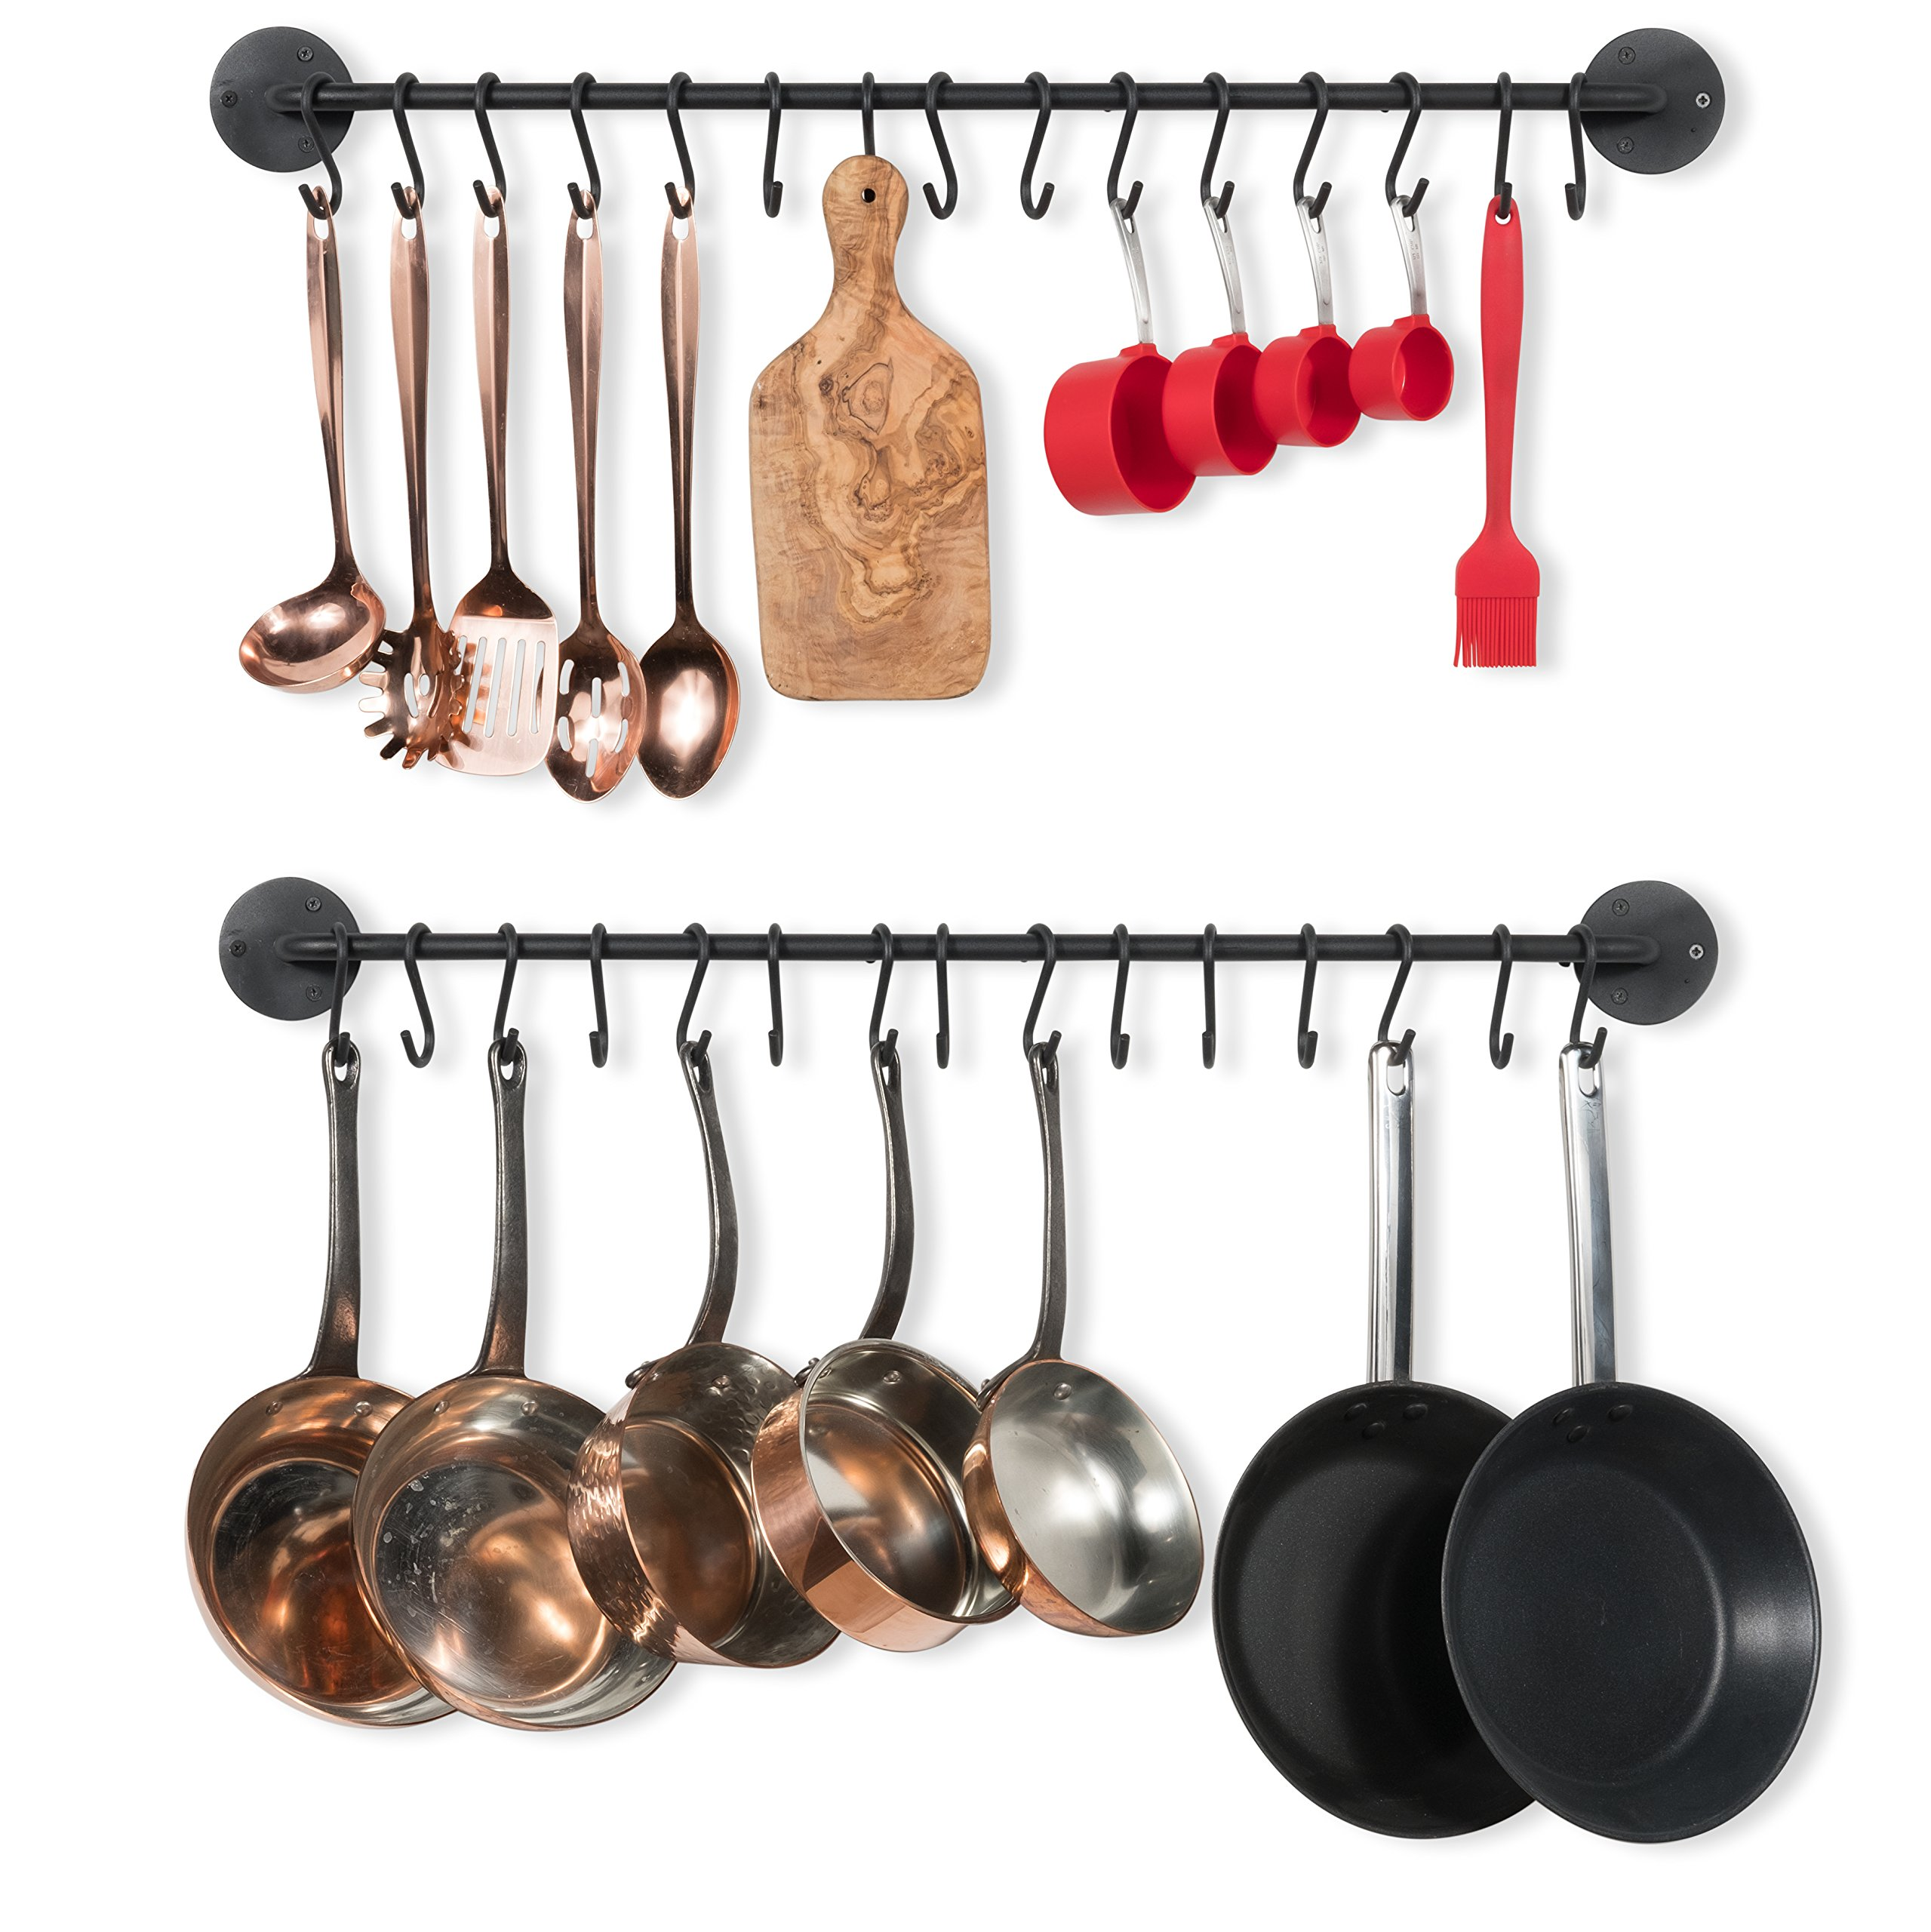 Wallniture Kitchen Pot Racks, Set of 2 Wall Rails with 20 Hooks, Solid Iron, 33 inches by 2 inches by 4 inches, Black by Wallniture